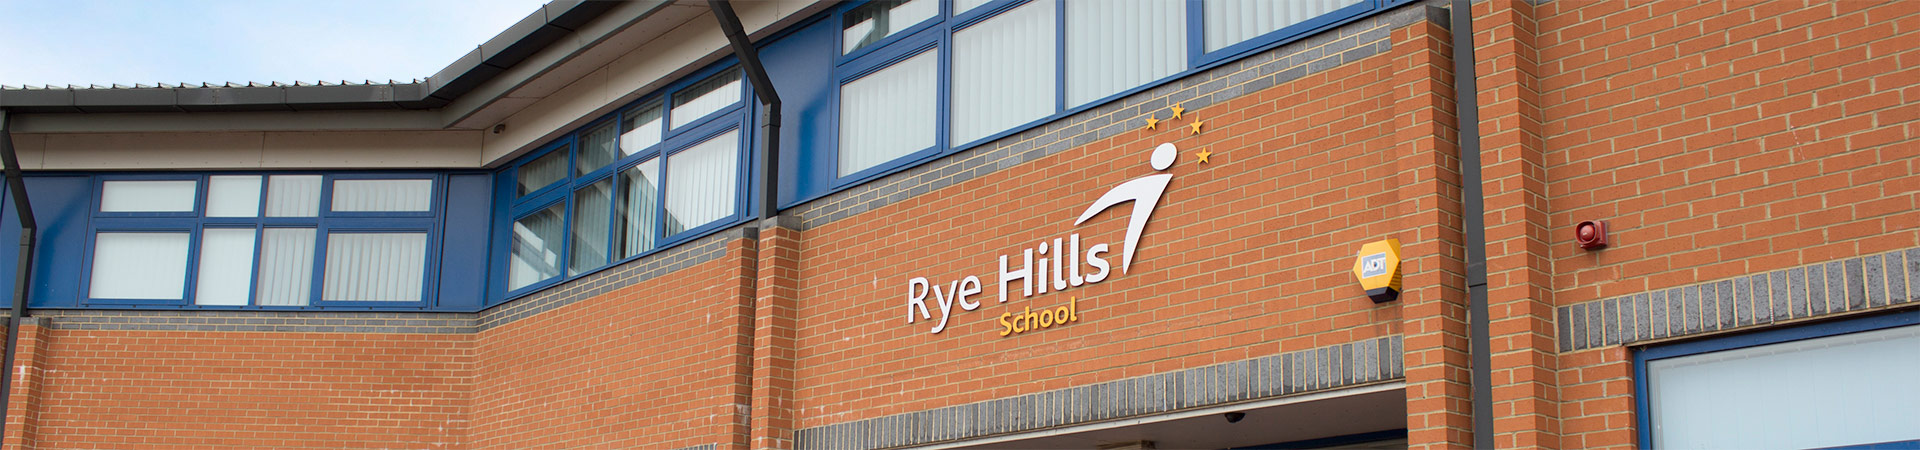 Rye Hills School, Stockton On Tees